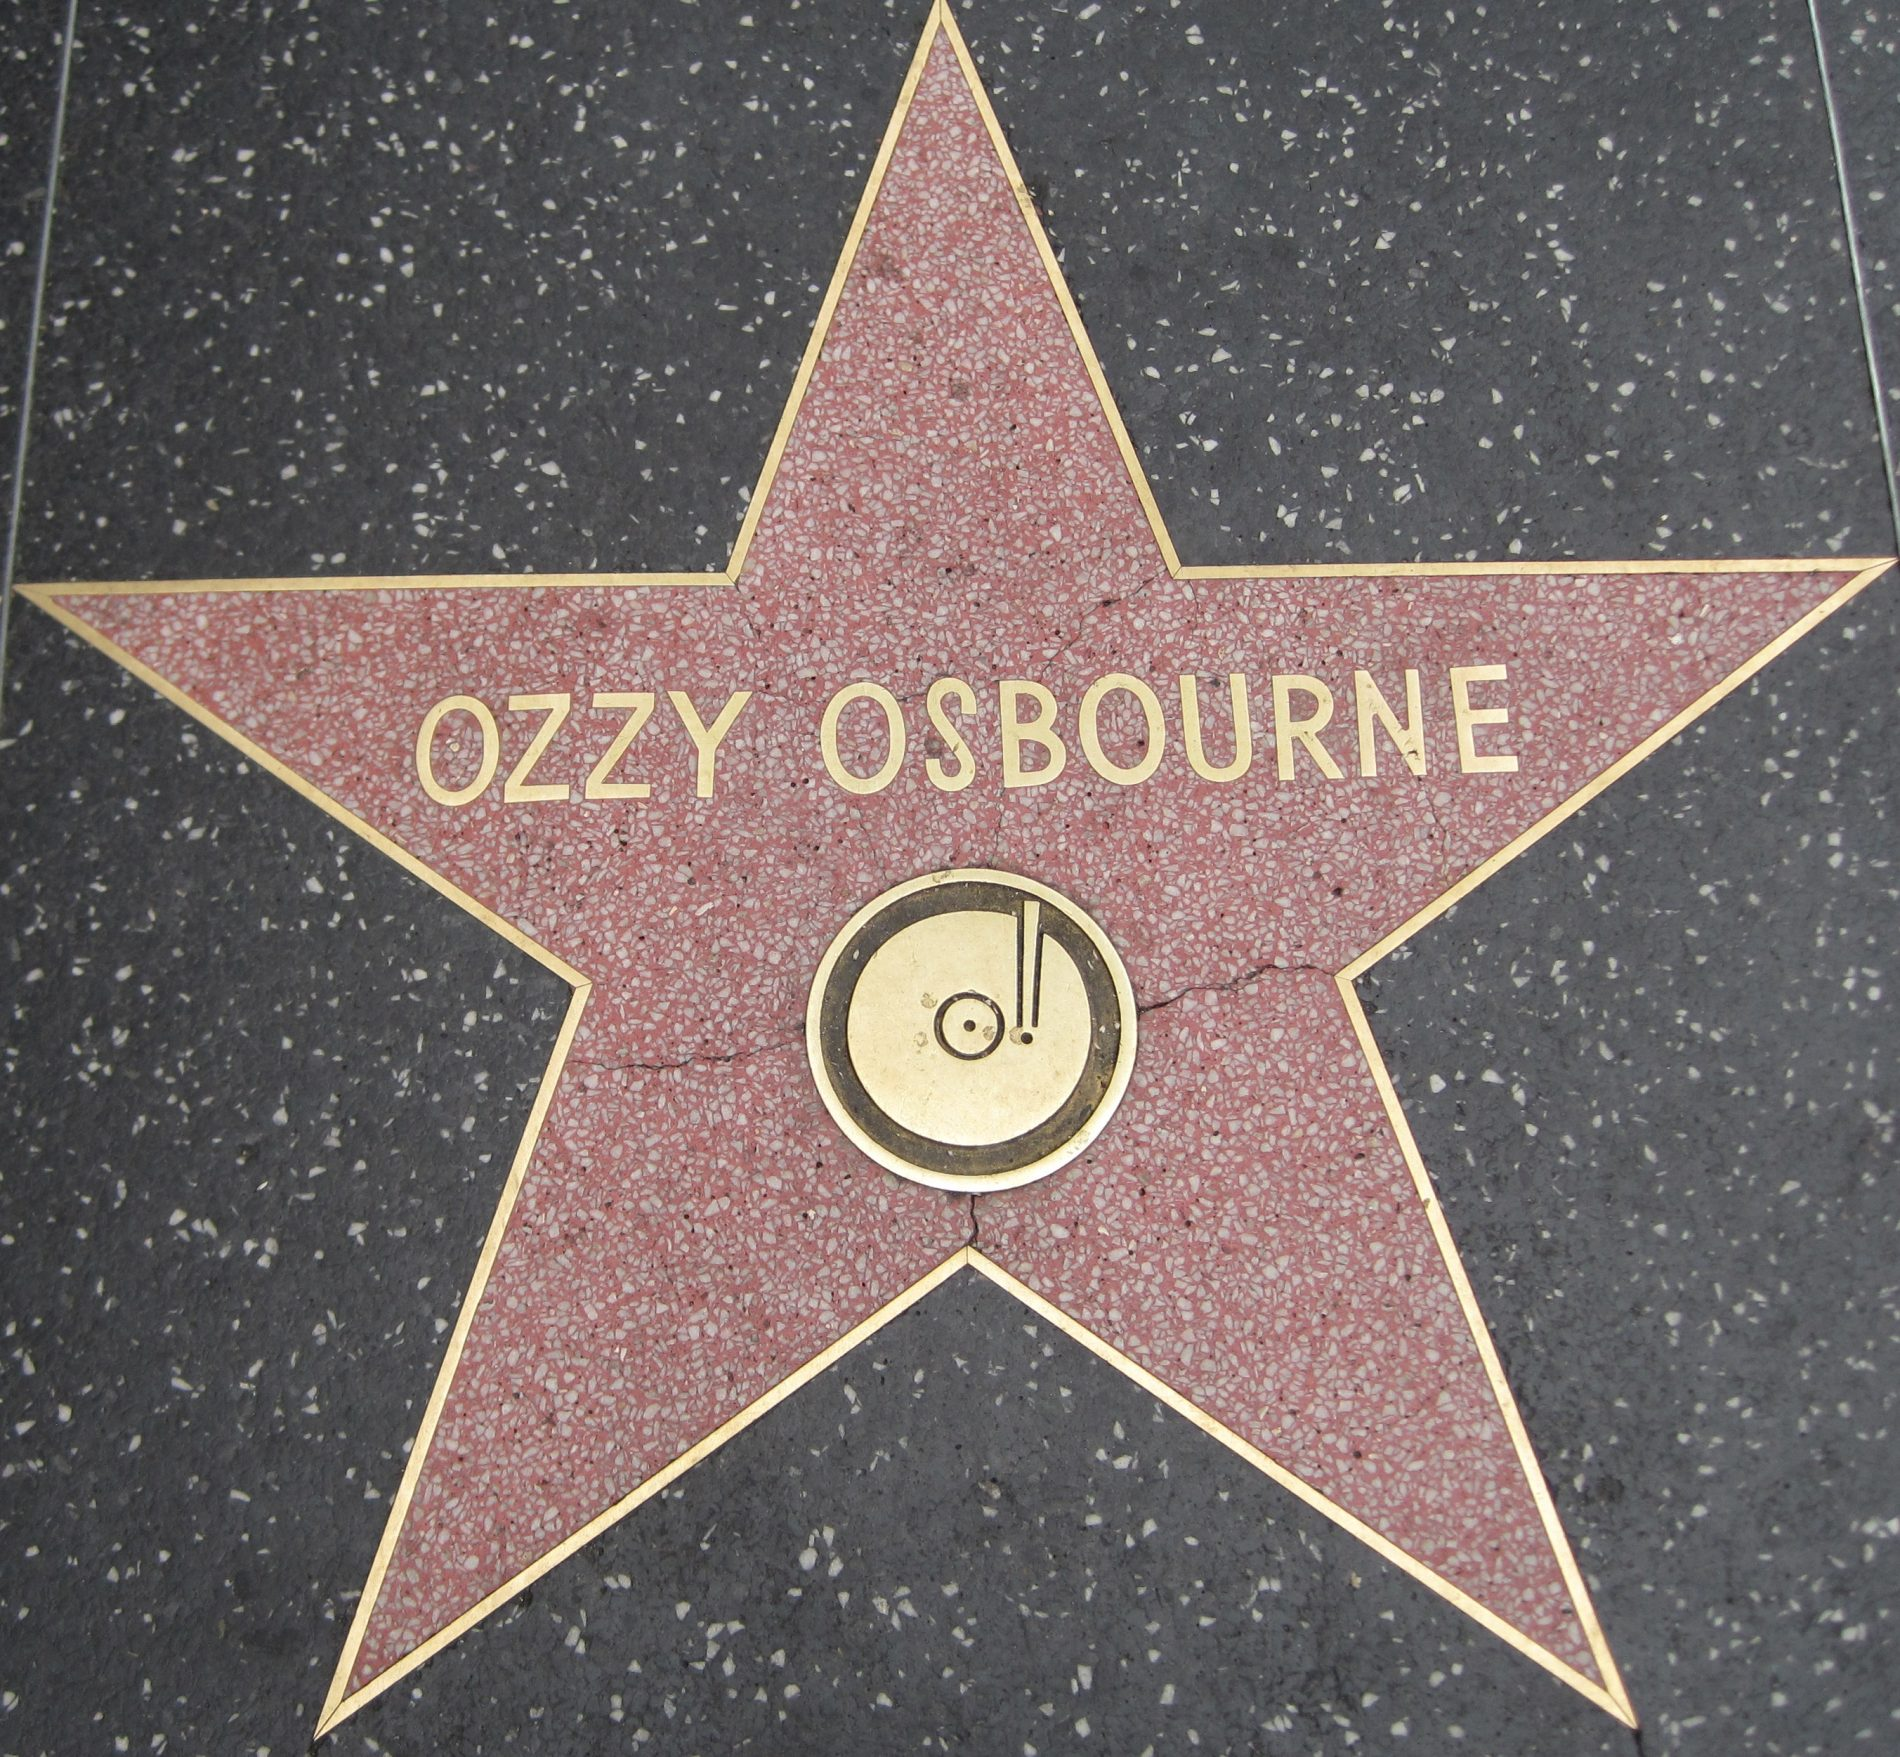 Ozzy Osbourne's Star at the Hollywood Walk of Fame